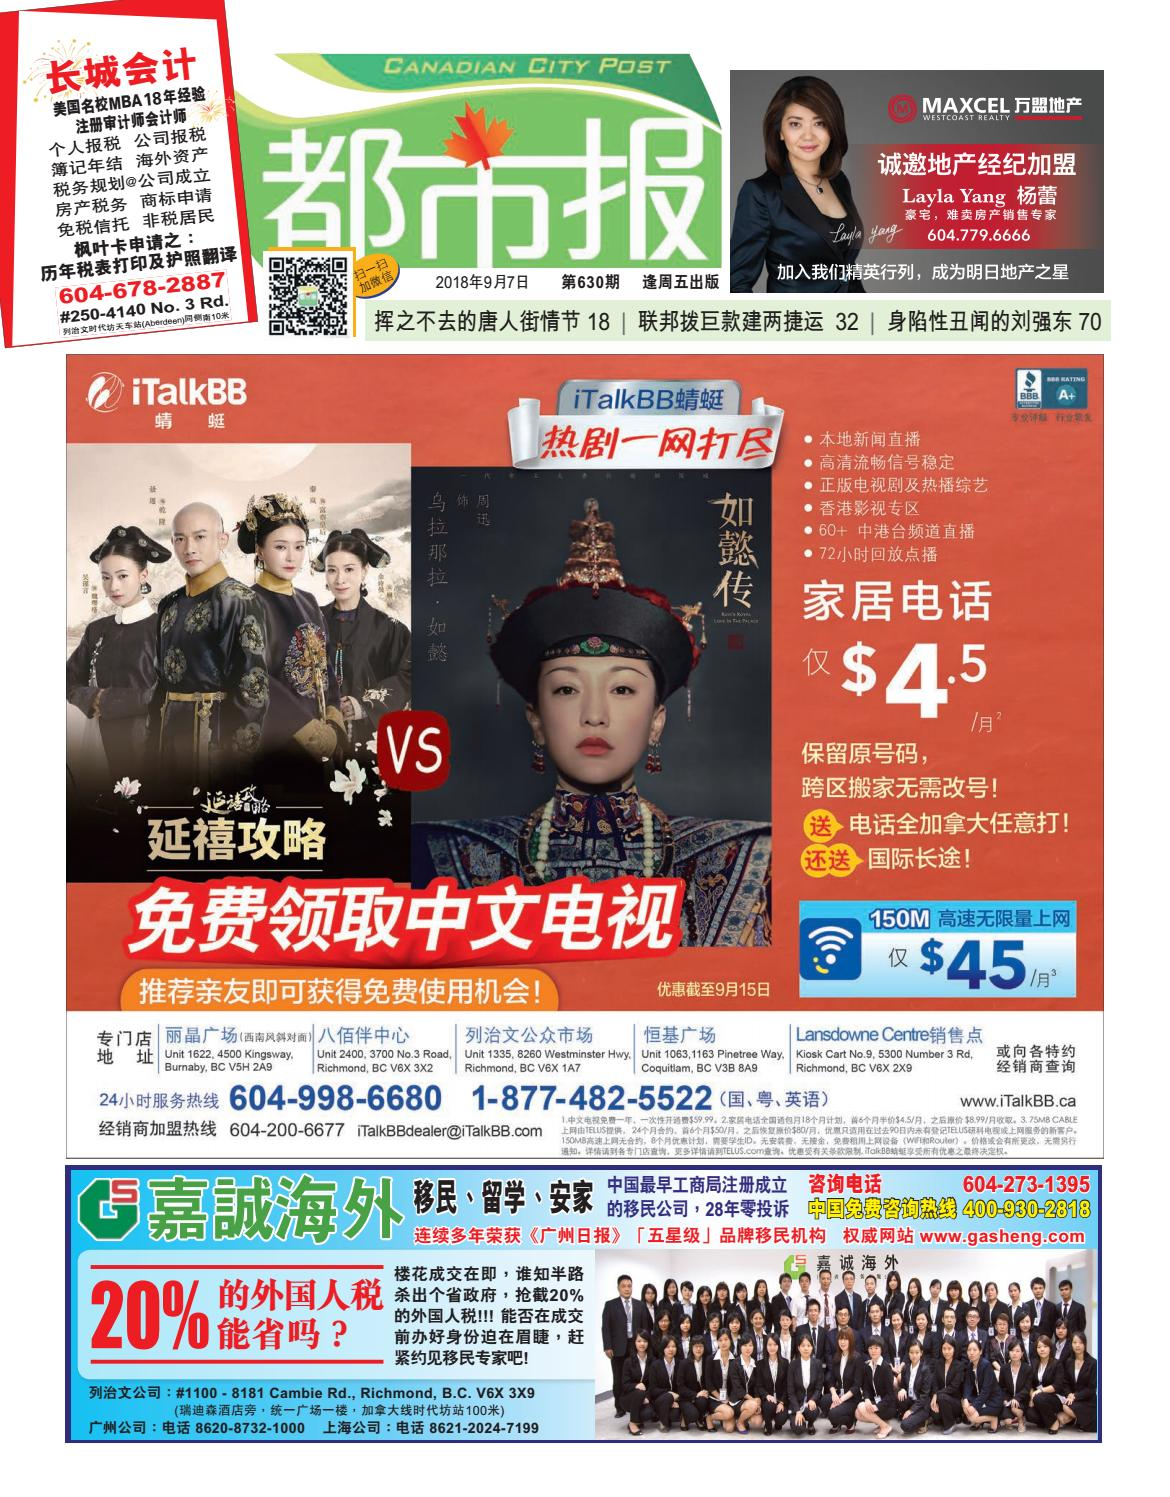 Sing Tao Canadian City Post 20180907 By Sing Tao Vancouver 星島